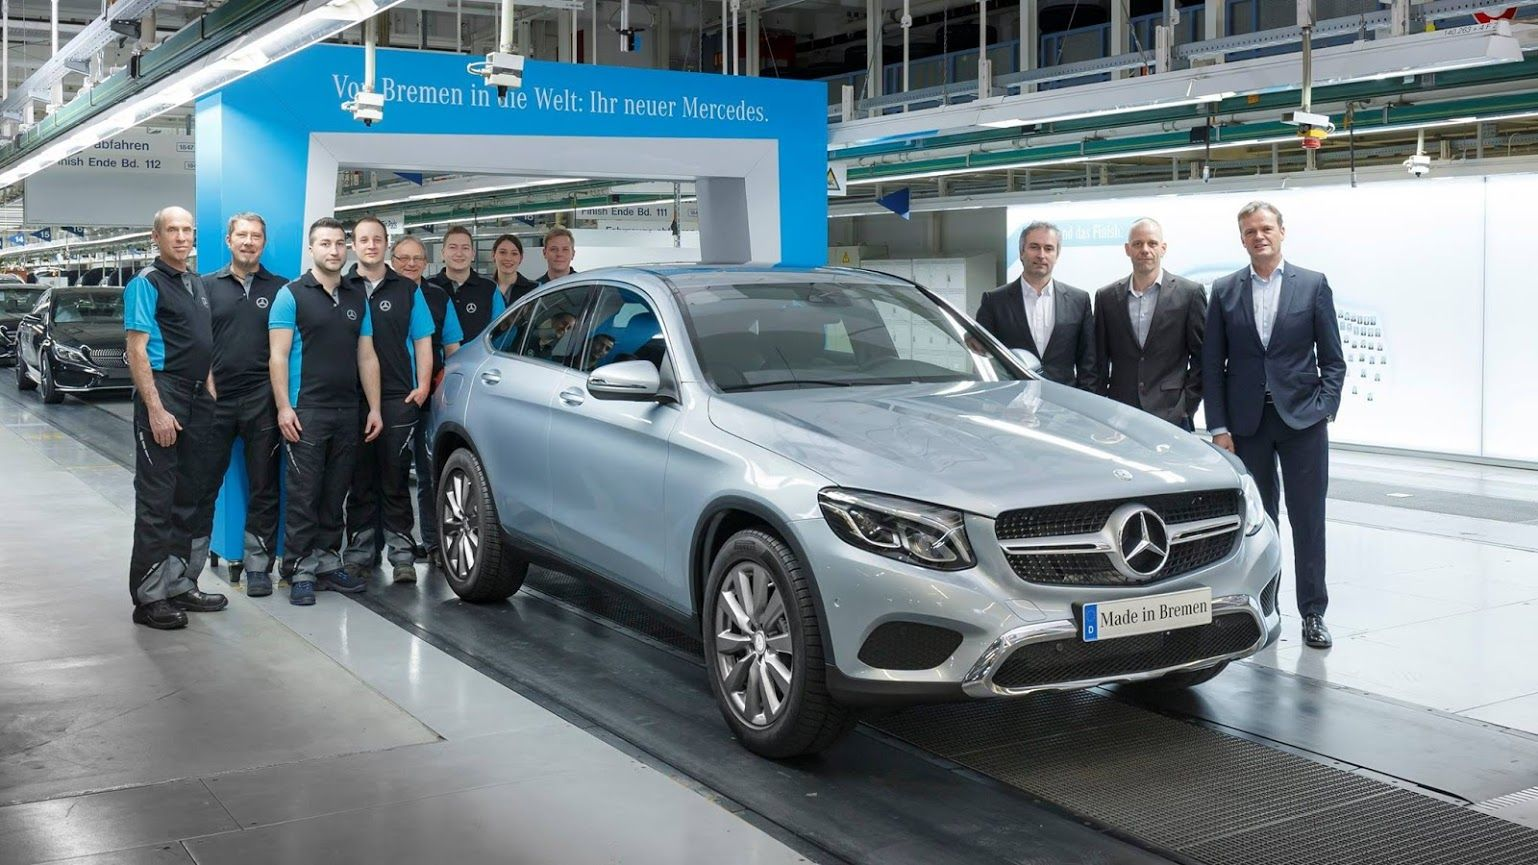 The mercedes benz glc coupe carleasing deal one of the many cars and